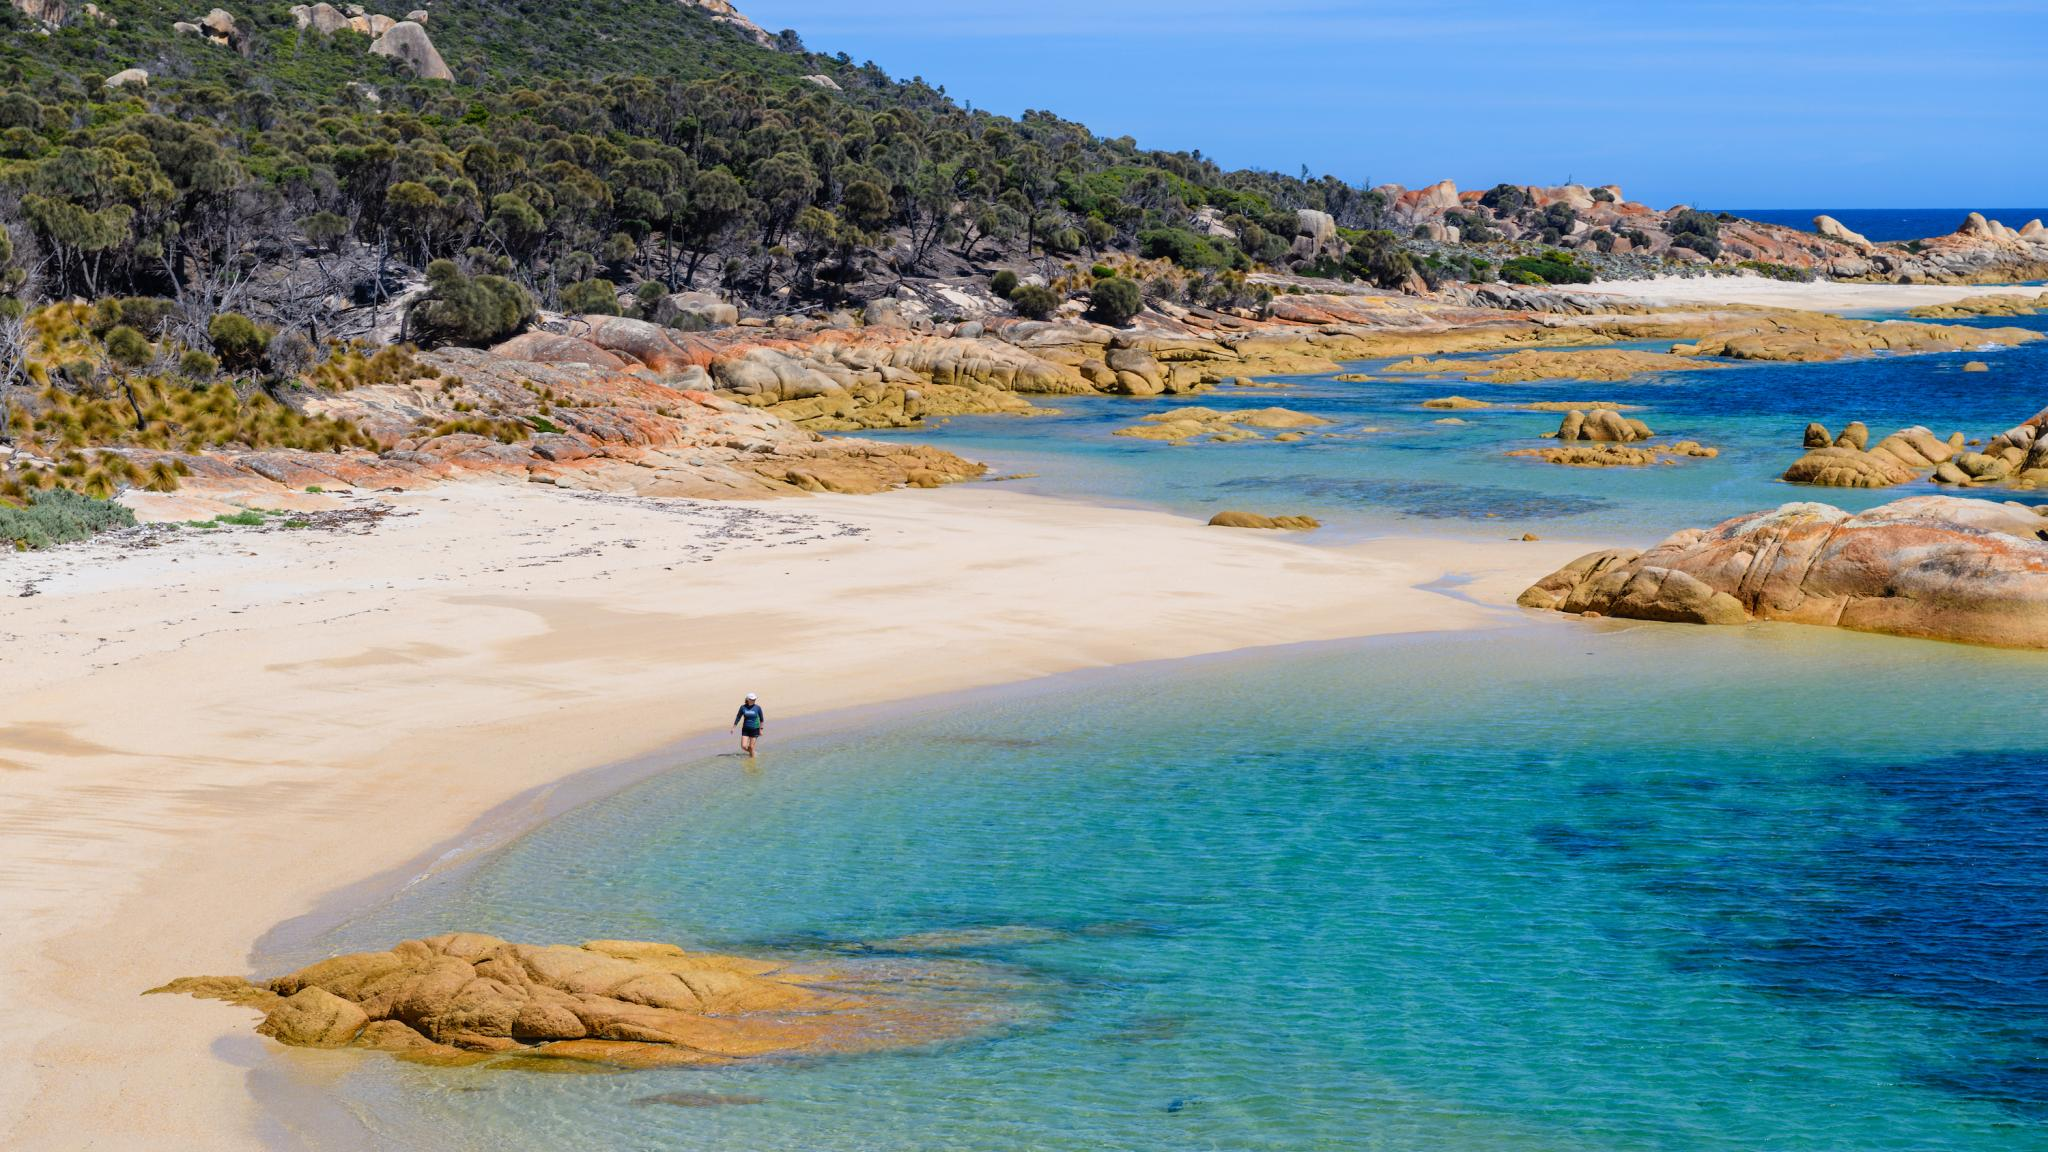 Roaring 40s Kayaking - Kayaking adventures on Flinders Island, Tasmania